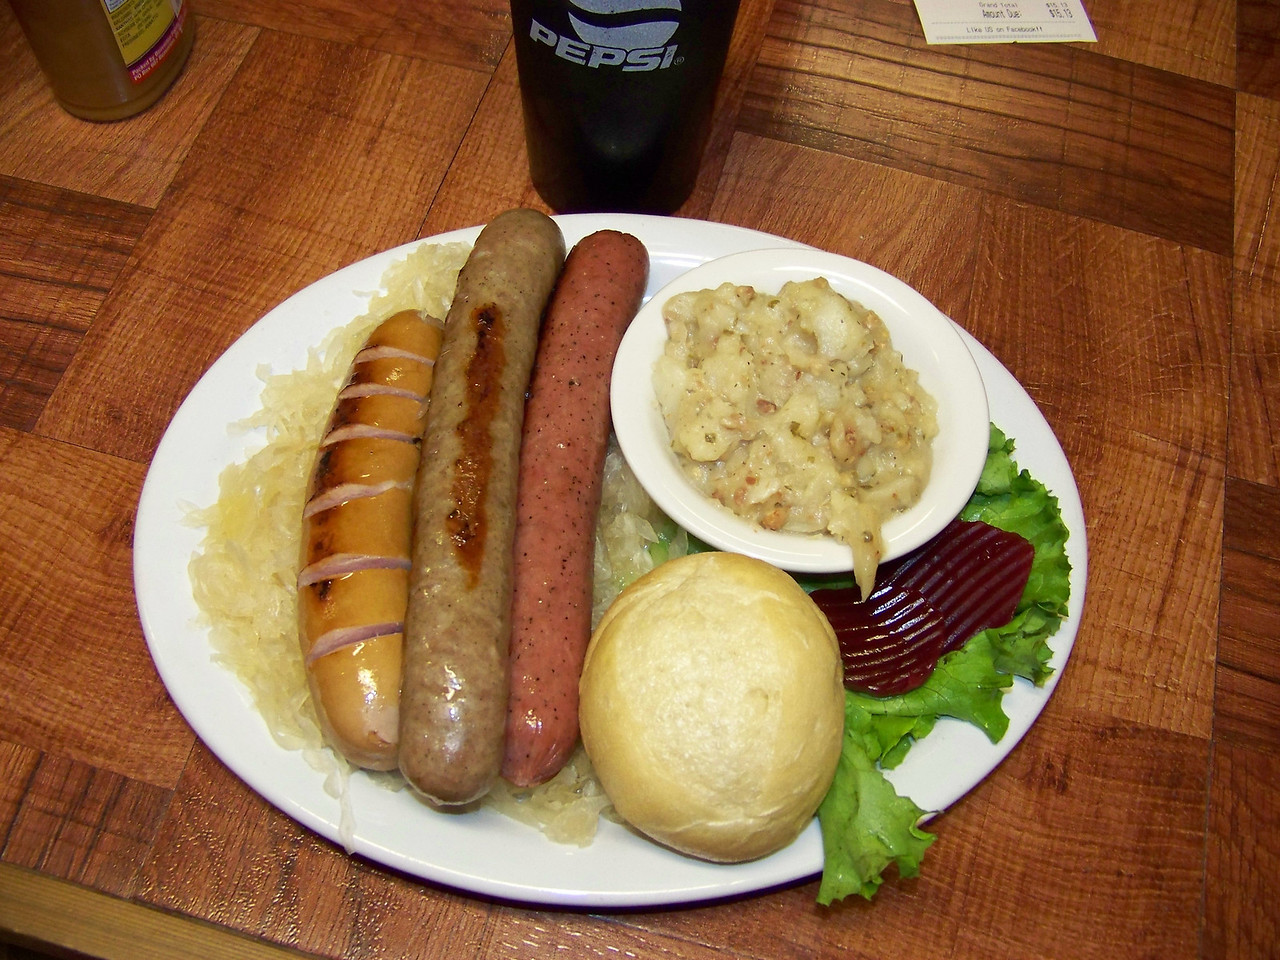 """My lunch at the Soup Cellar was great!  After a cup of broccoli & cheese soup, I had the sausage sampler plate--three different types of sausage served on a bed of sauerkraut, with German potato salad, and a roll.  Yum! [Leavenworth, WA - December 2013 - <b><a target=""""_new"""" href=""""http://youtu.be/NqCqDCOY_tc"""">Watch my video here</a></b>]"""